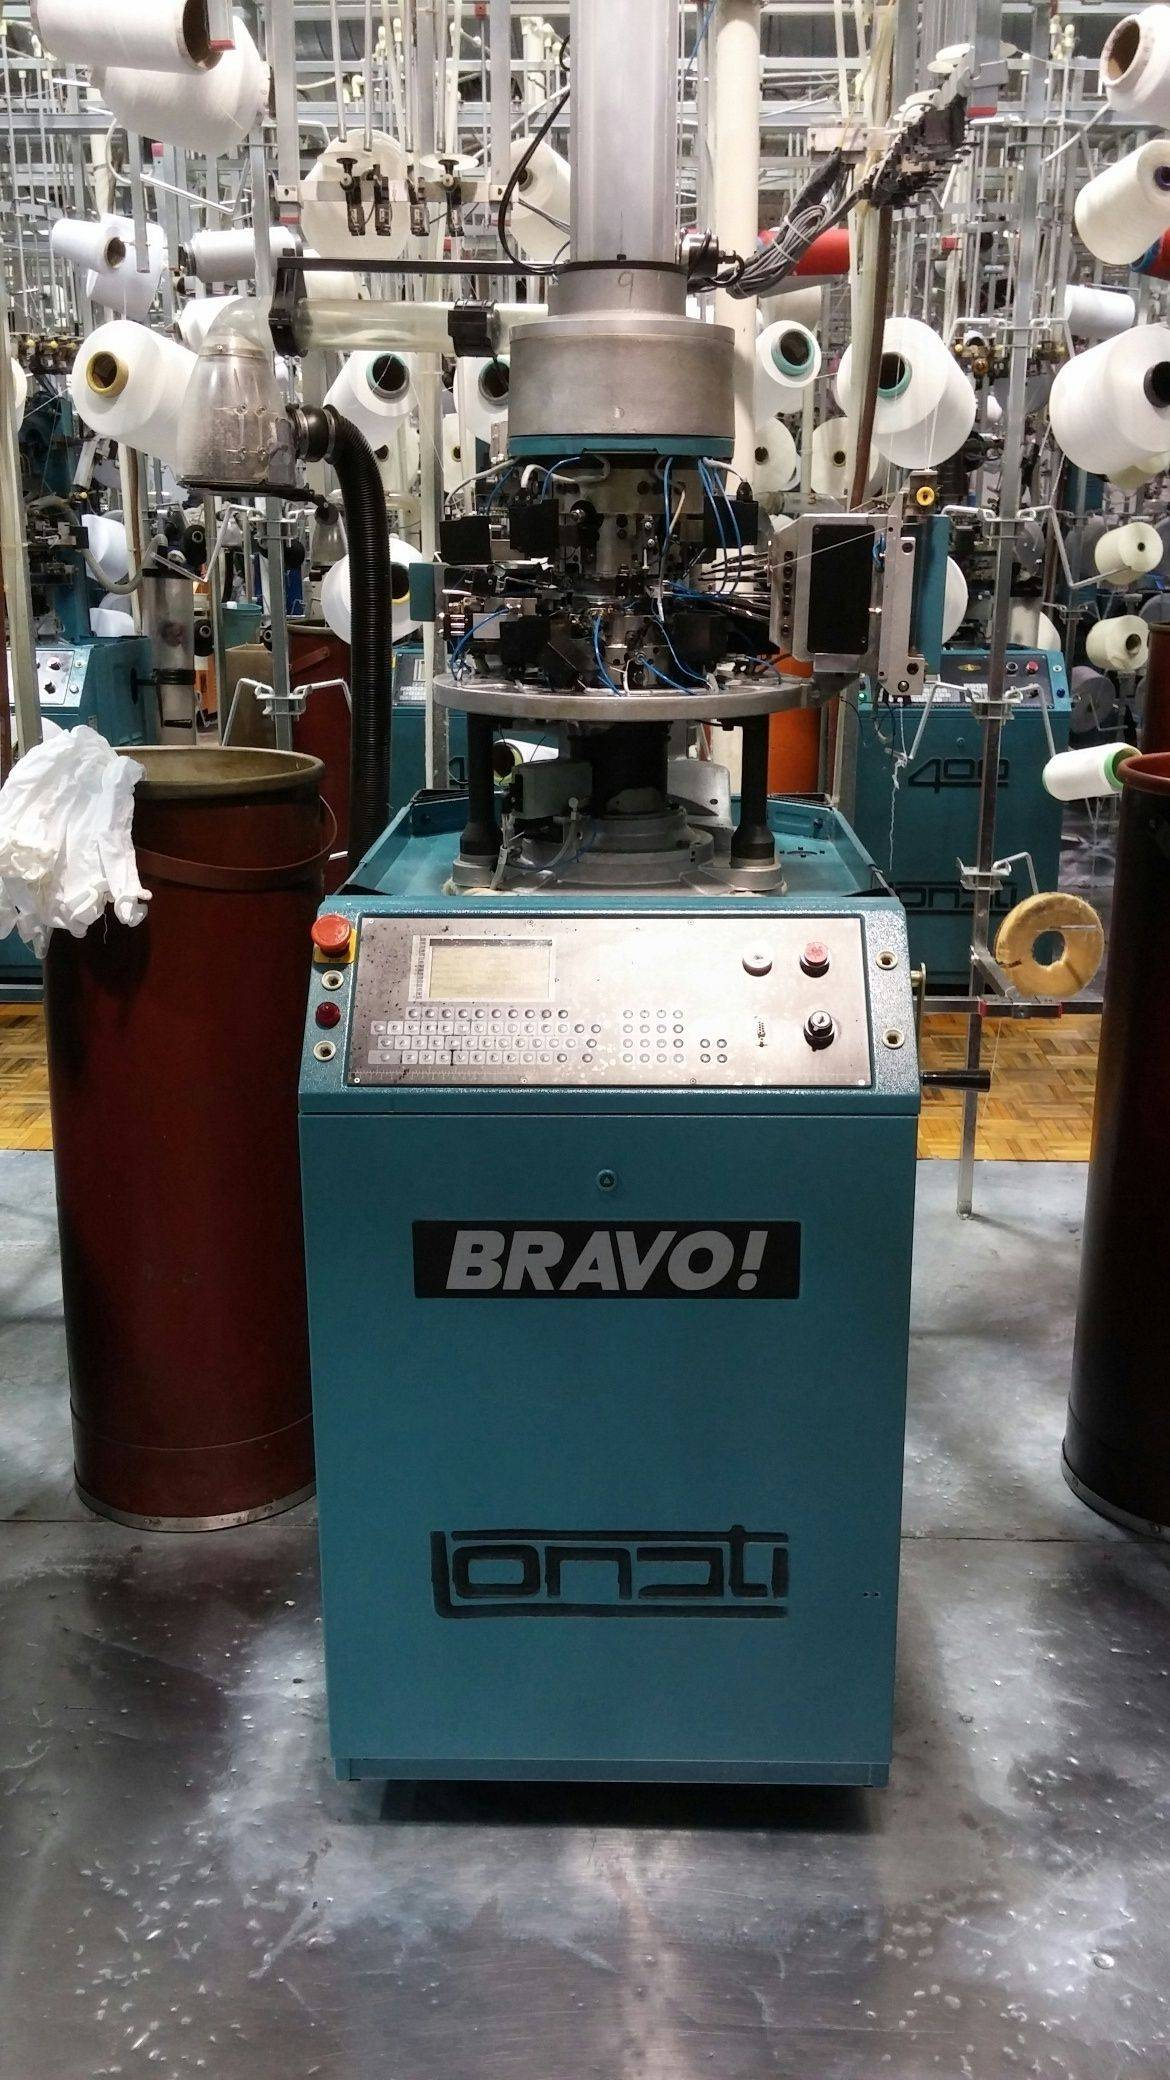 Lonati Bravo Knitting machines